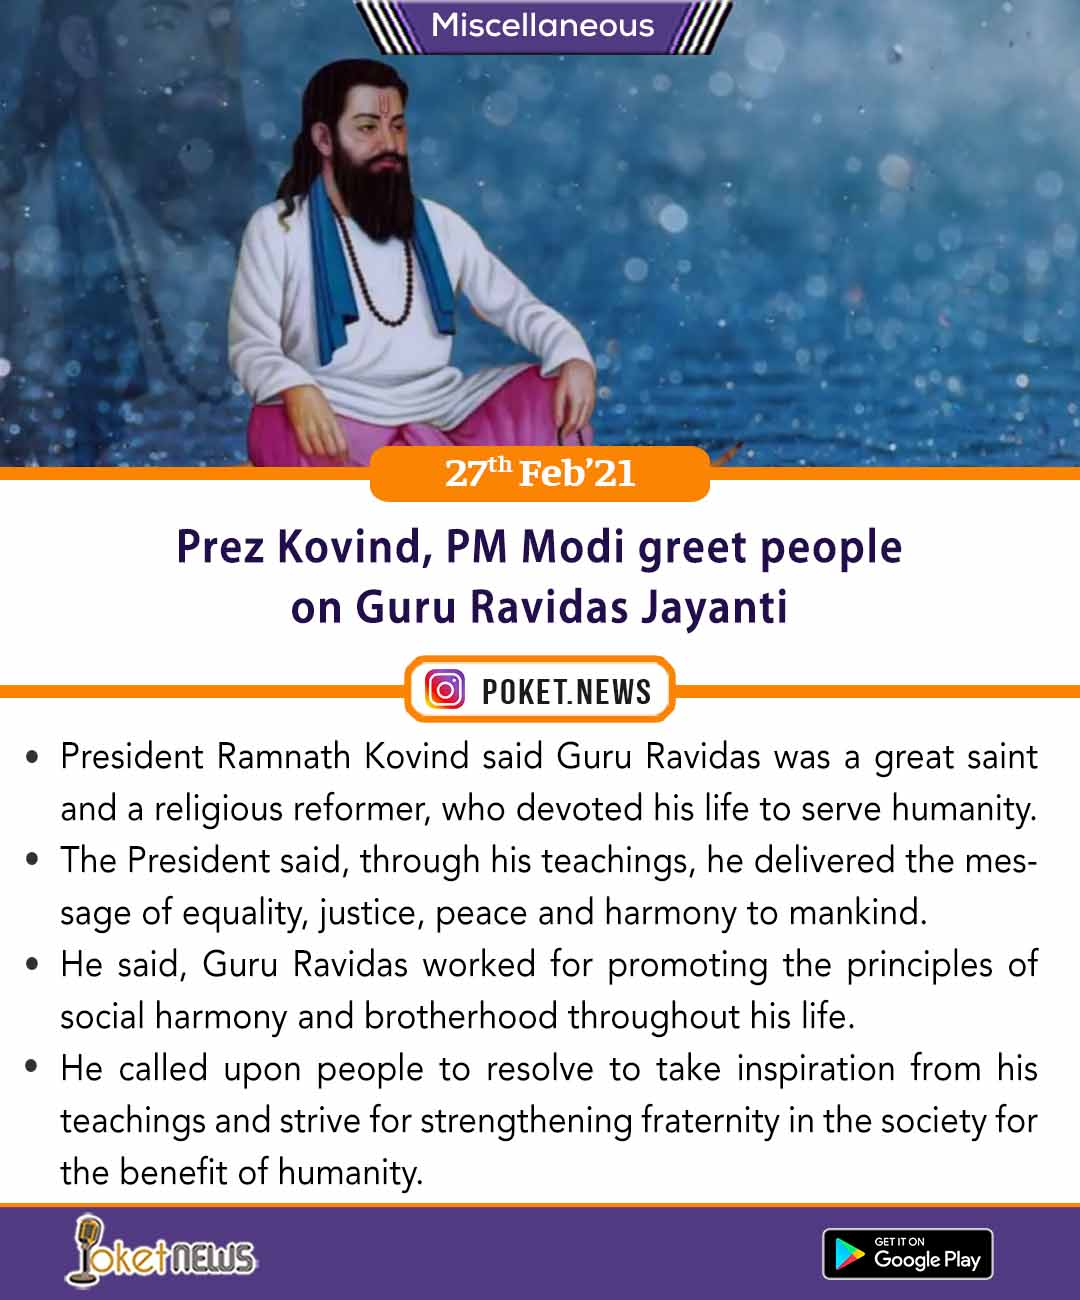 Prez Kovind, PM Modi greet people on Guru Ravidas Jayanti